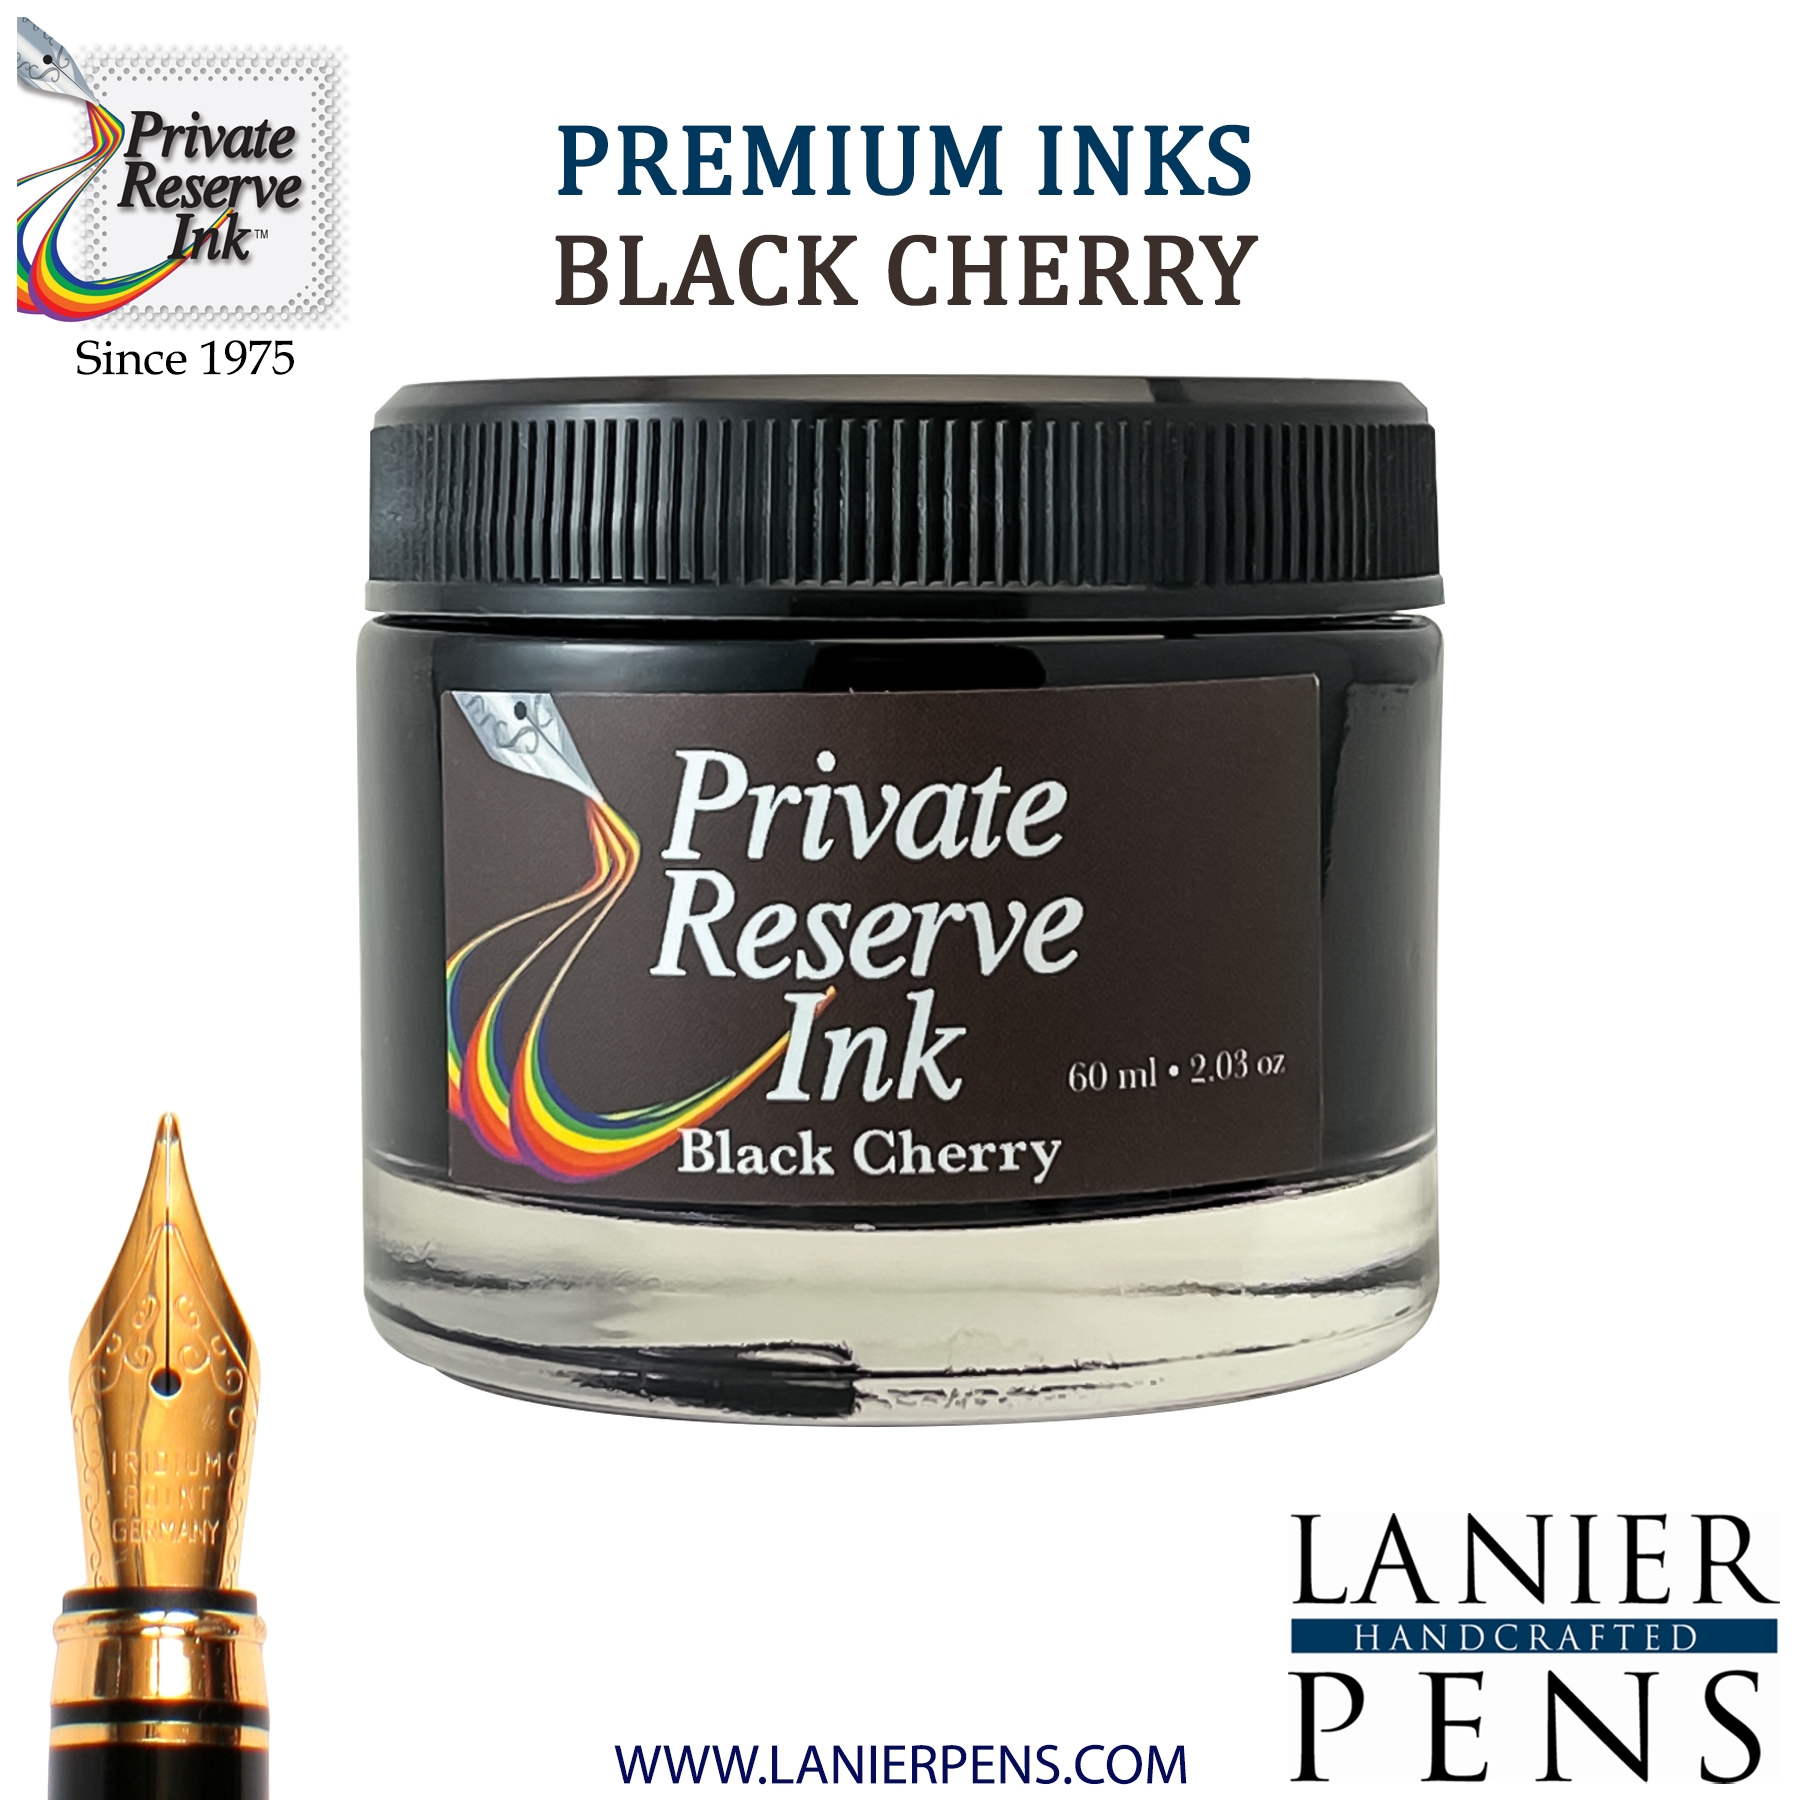 Private Reserve Black Cherry Fountain Pen Ink Bottle 16-blc Lanier Pens